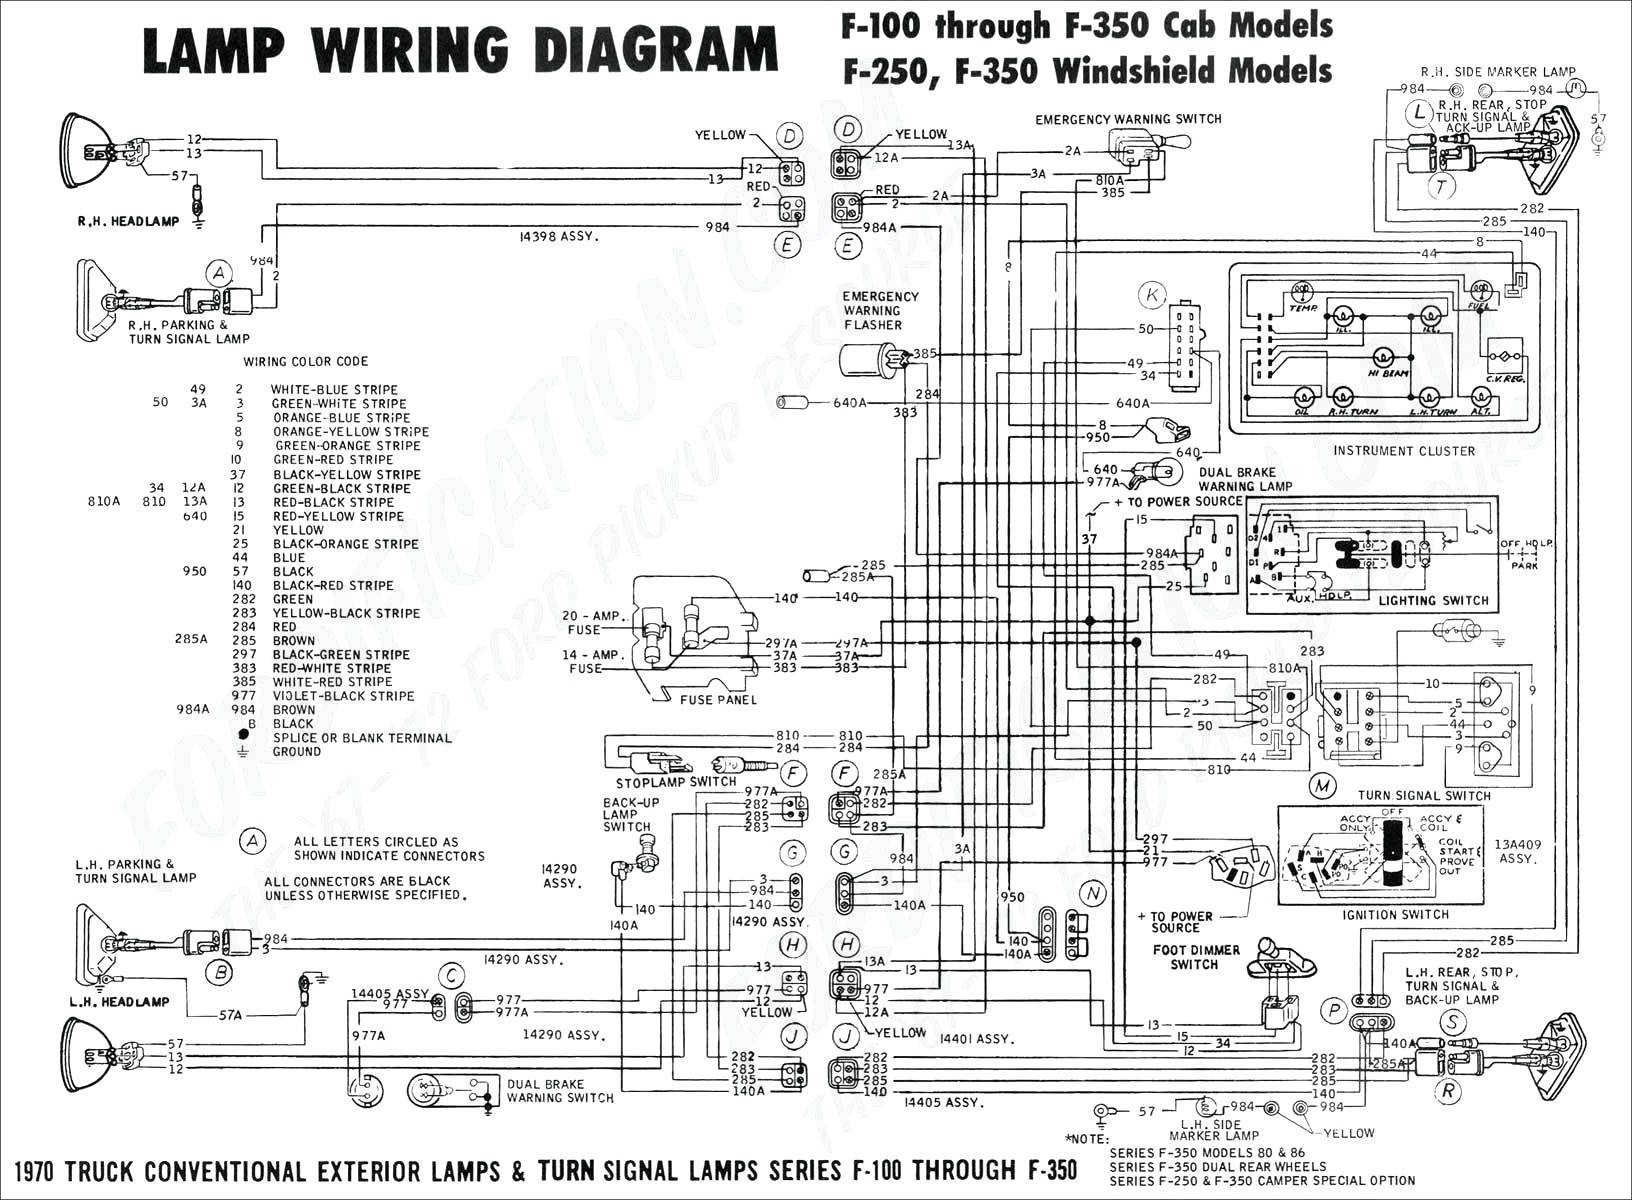 [QNCB_7524]  DIAGRAM] 2000 International 4300 Wiring Diagram FULL Version HD Quality Wiring  Diagram - ALBUMDIAGRAMADO.CHAIRE-CTSC.FR | 2004 International 4300 Wiring Diagrams |  | albumdiagramado.chaire-ctsc.fr